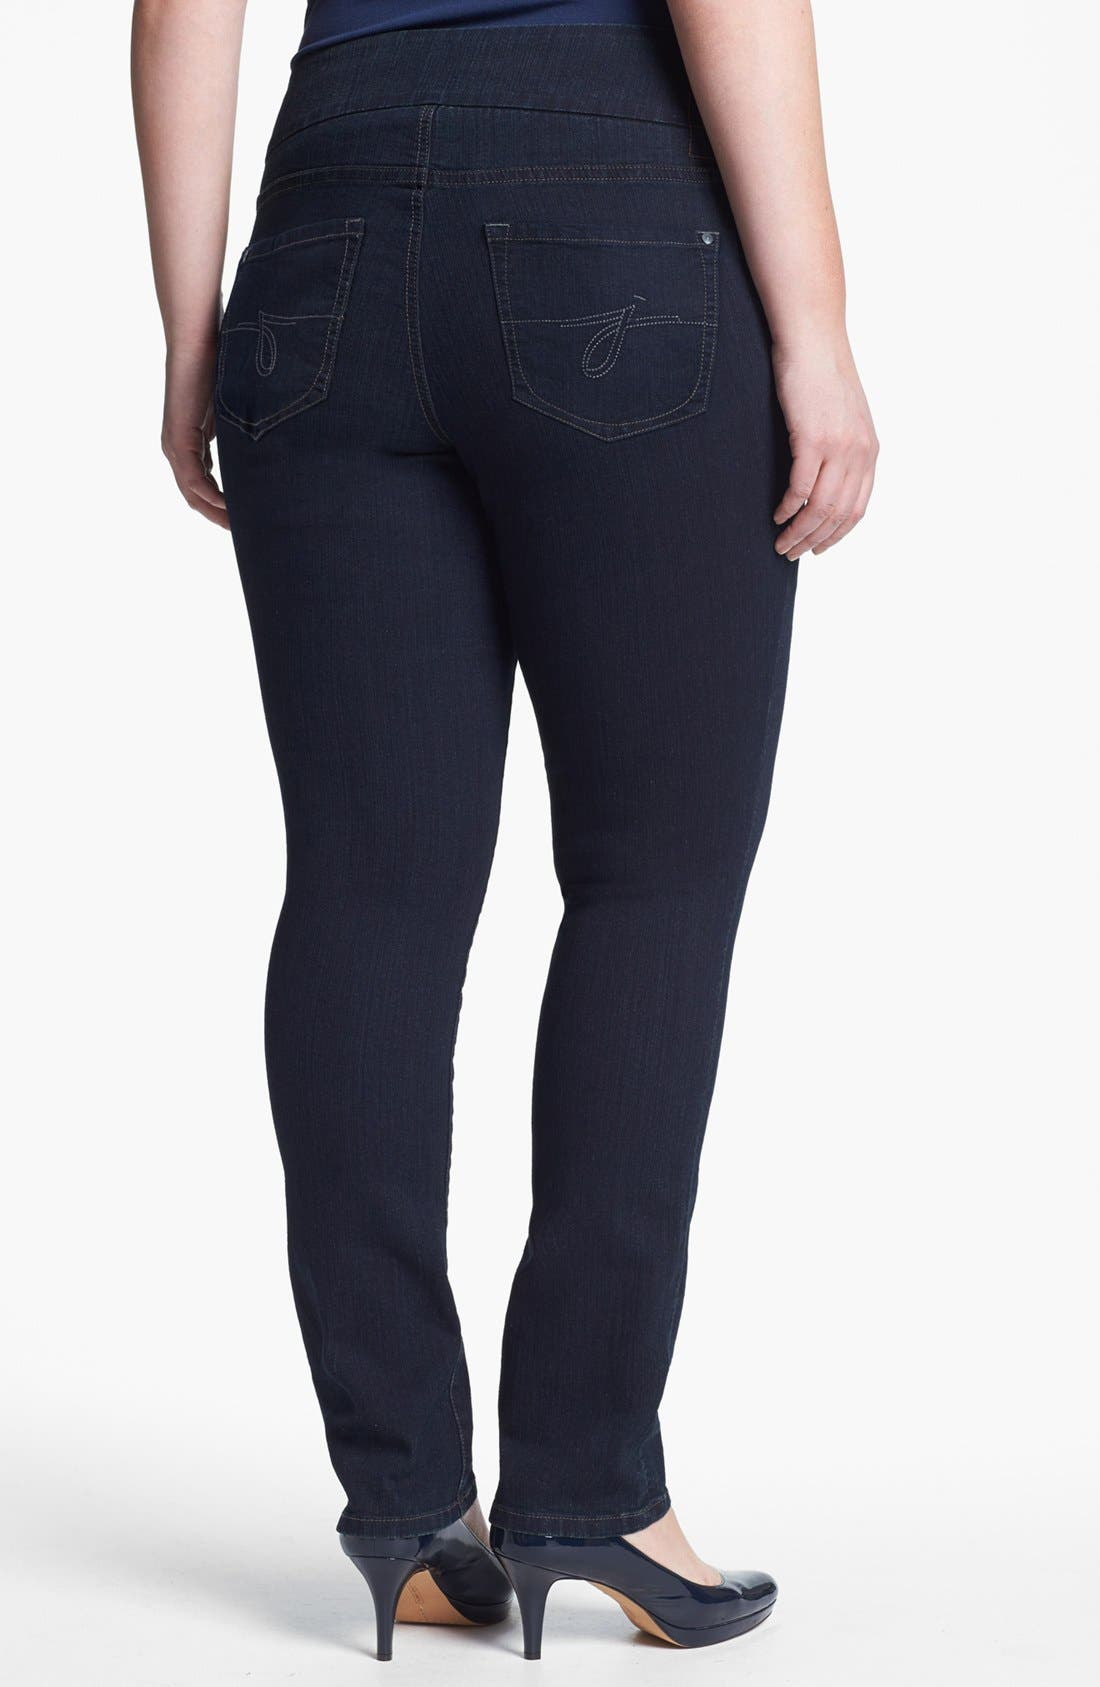 Alternate Image 2  - Jag Jeans 'Malia' Slim Leg Jeans (Plus Size)